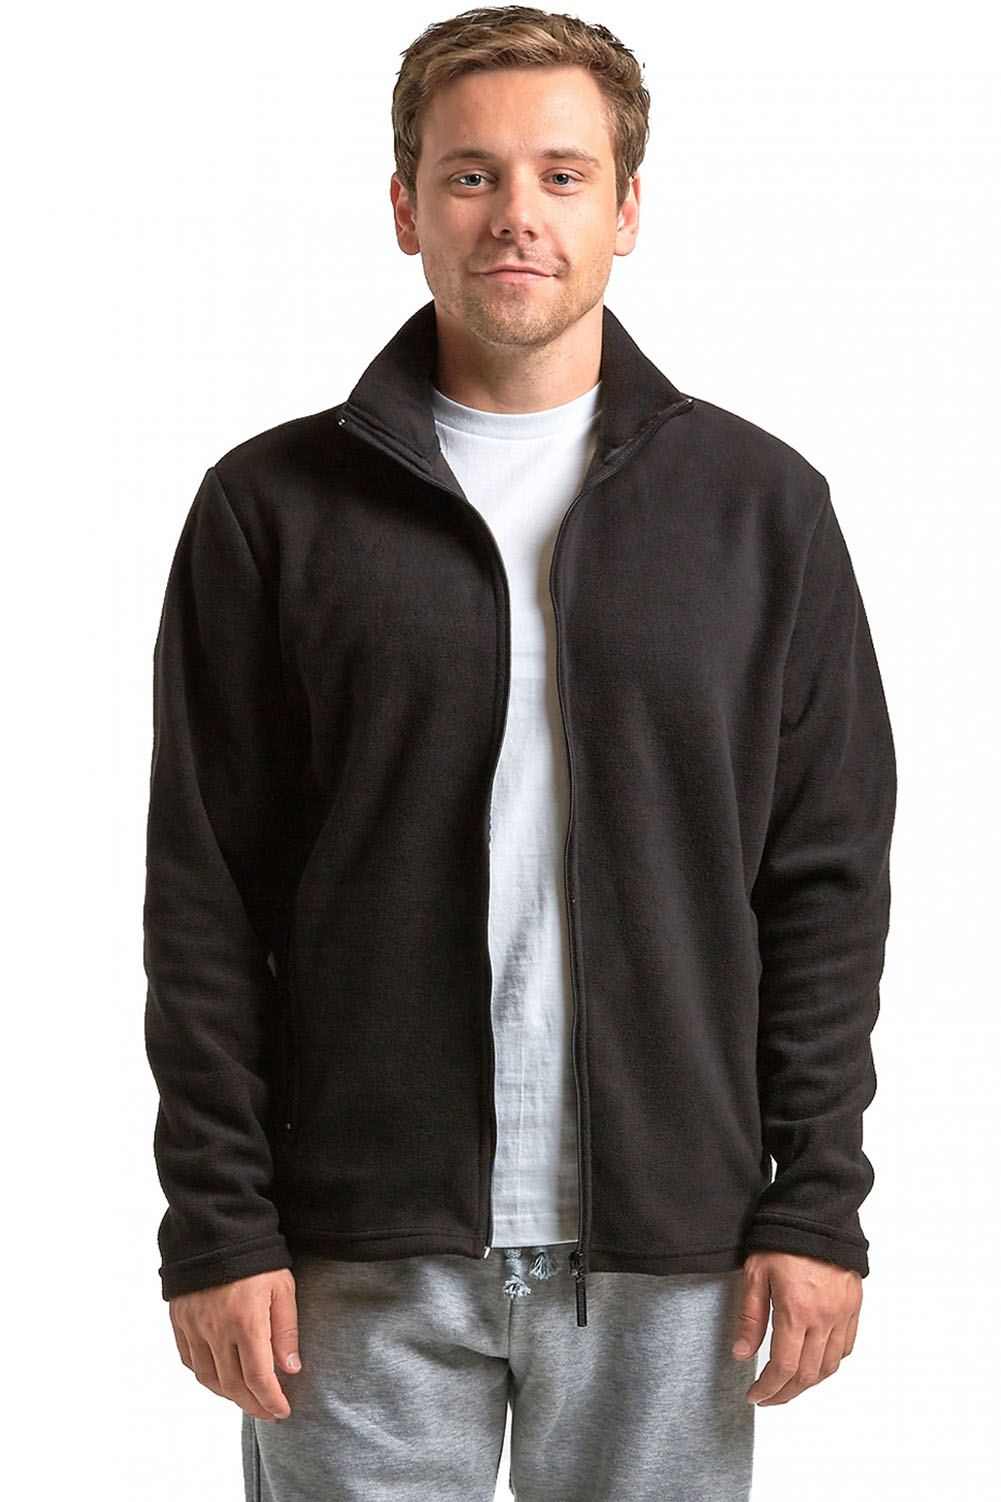 Polar Fleece Bettwäsche Knocker Mens Polar Fleece Jacket Zip Up Winter Light